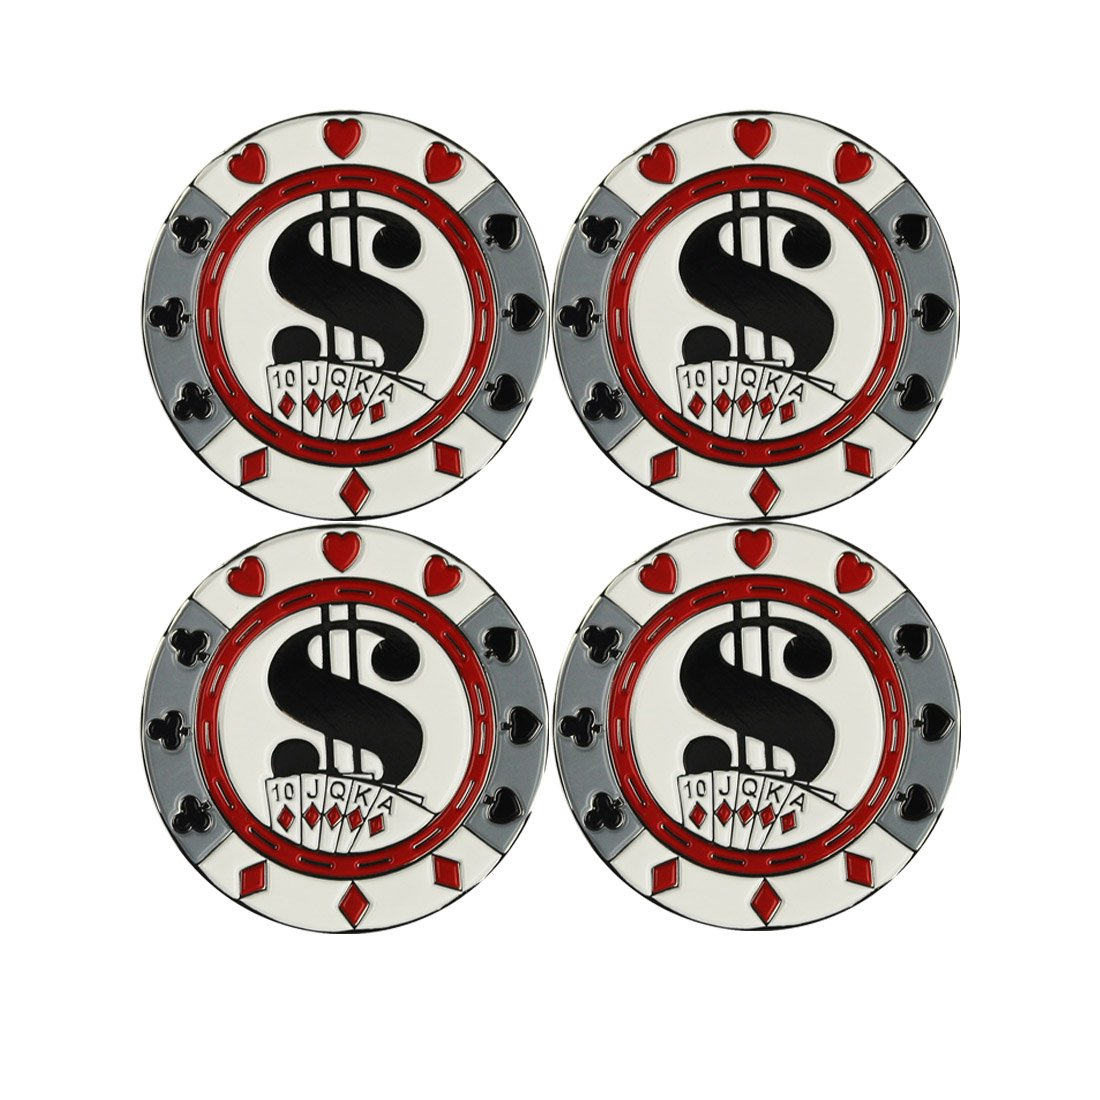 PINMEI Set of 4 Metal Magnetic Golf Poker Chips with Removable Ball Markers for Golf Game